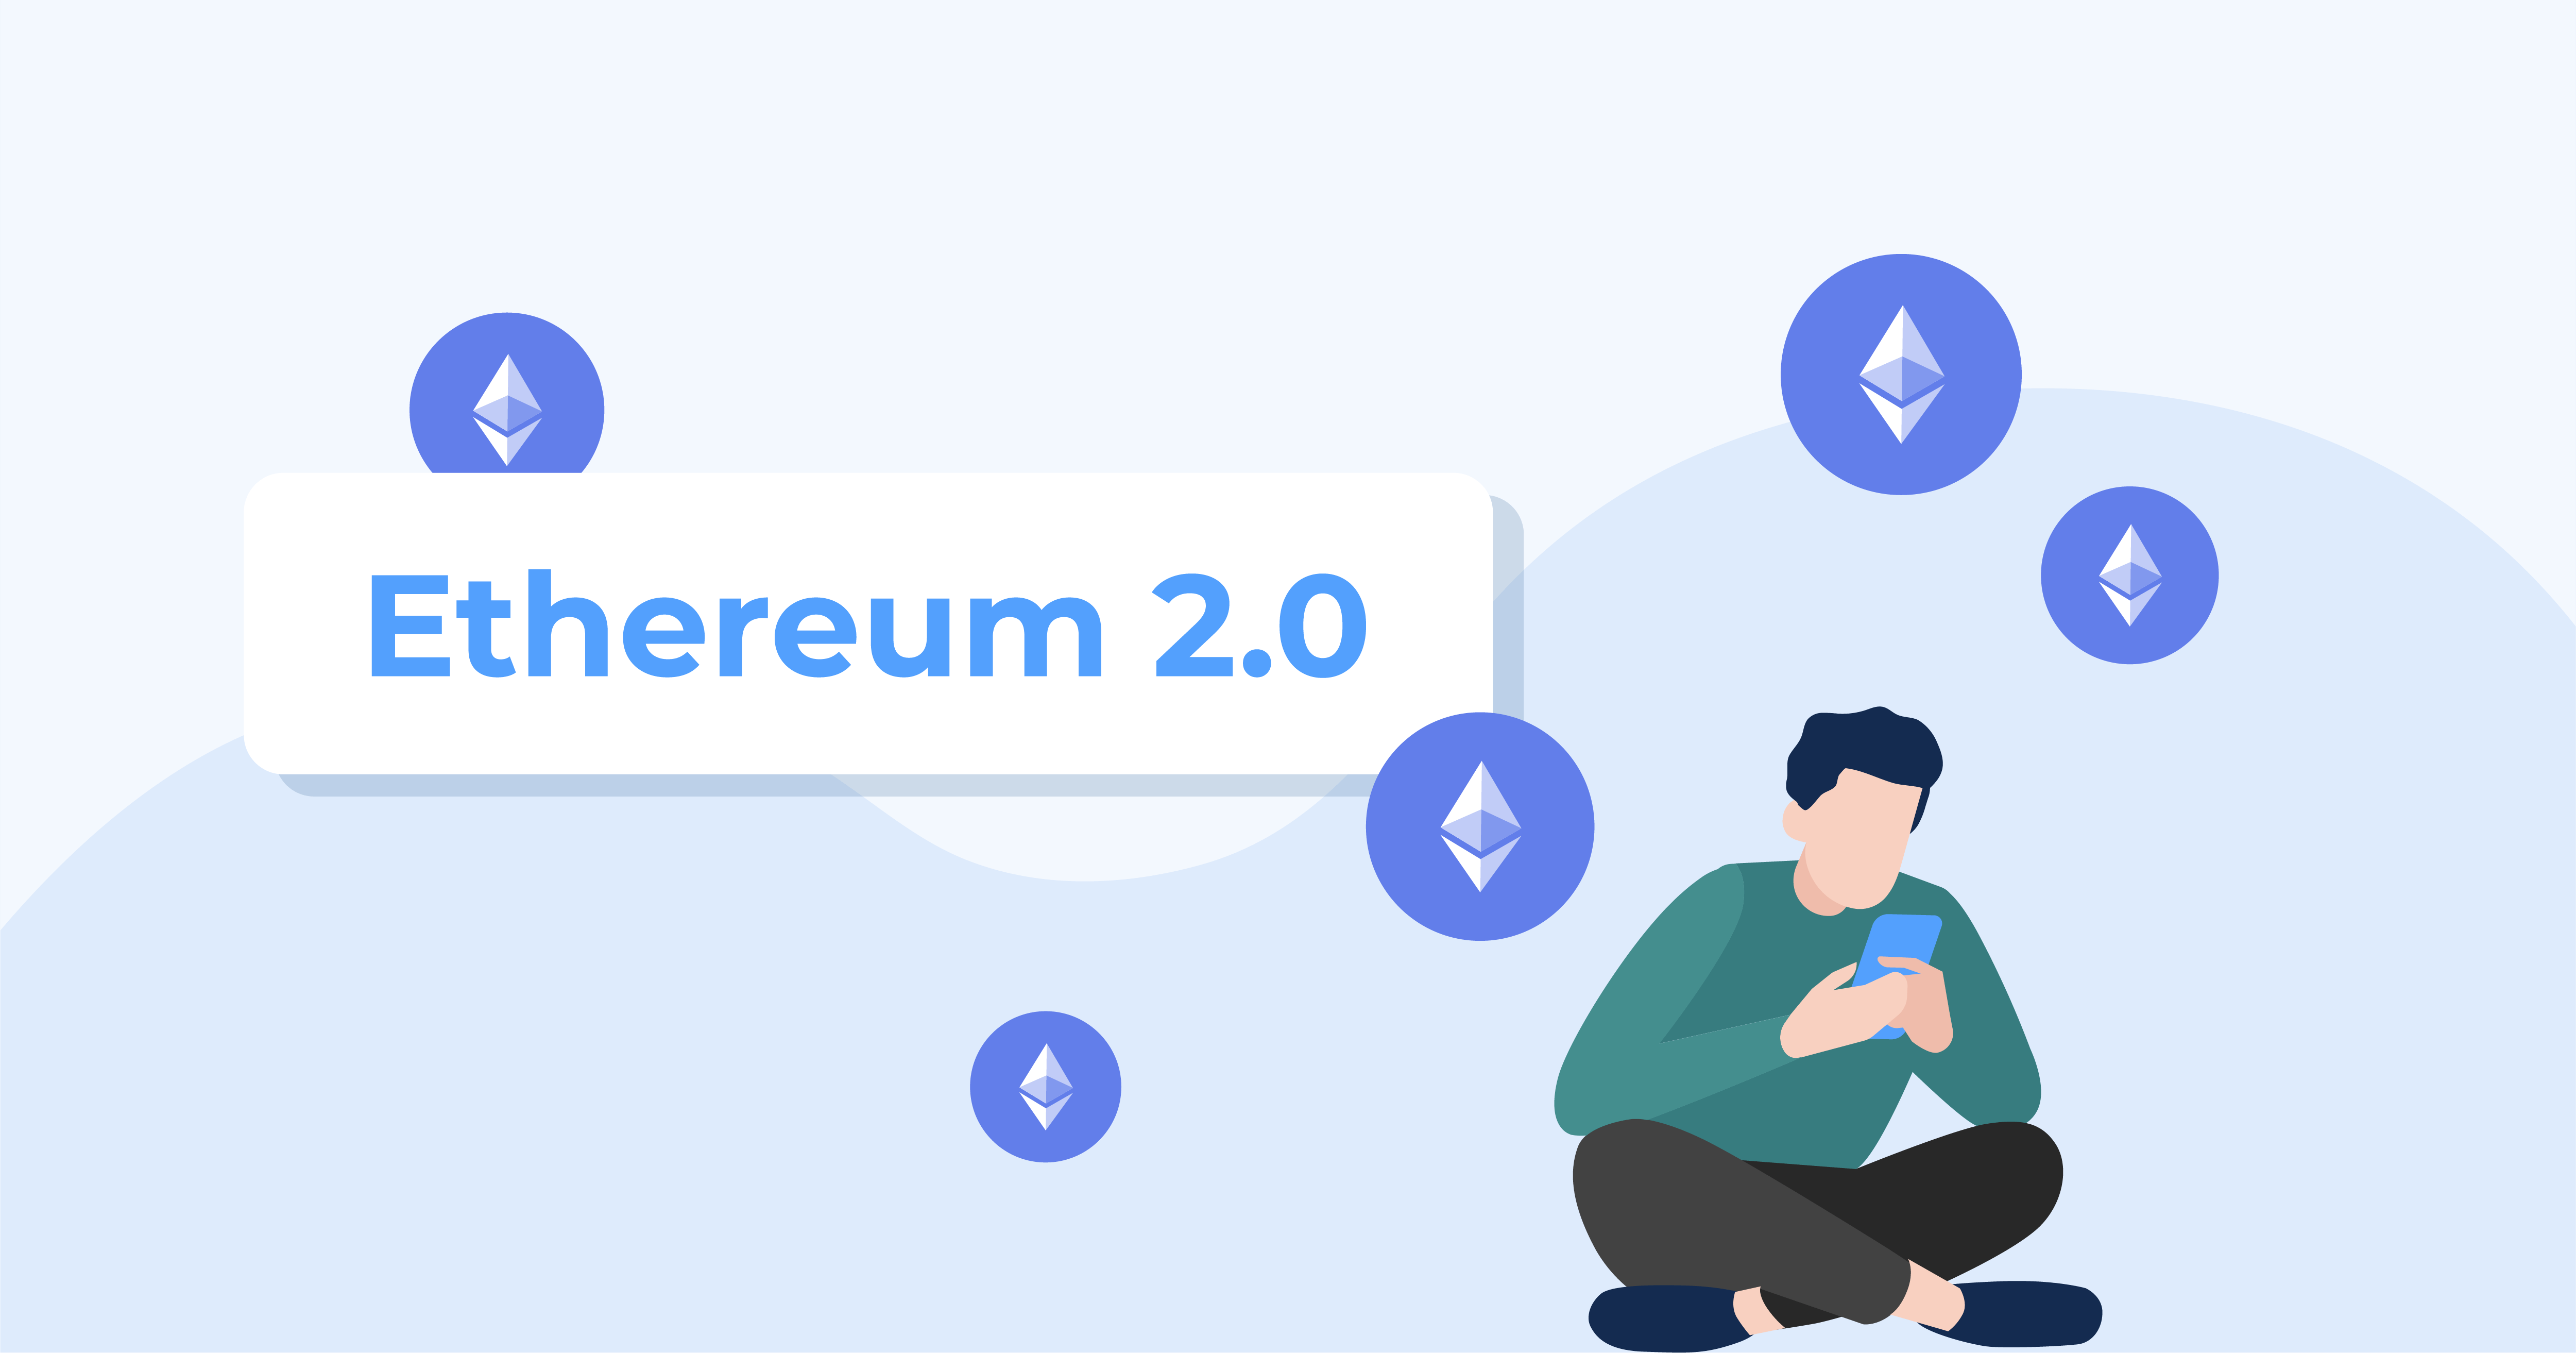 What are the Tax Implications for Ethereum 2.0?